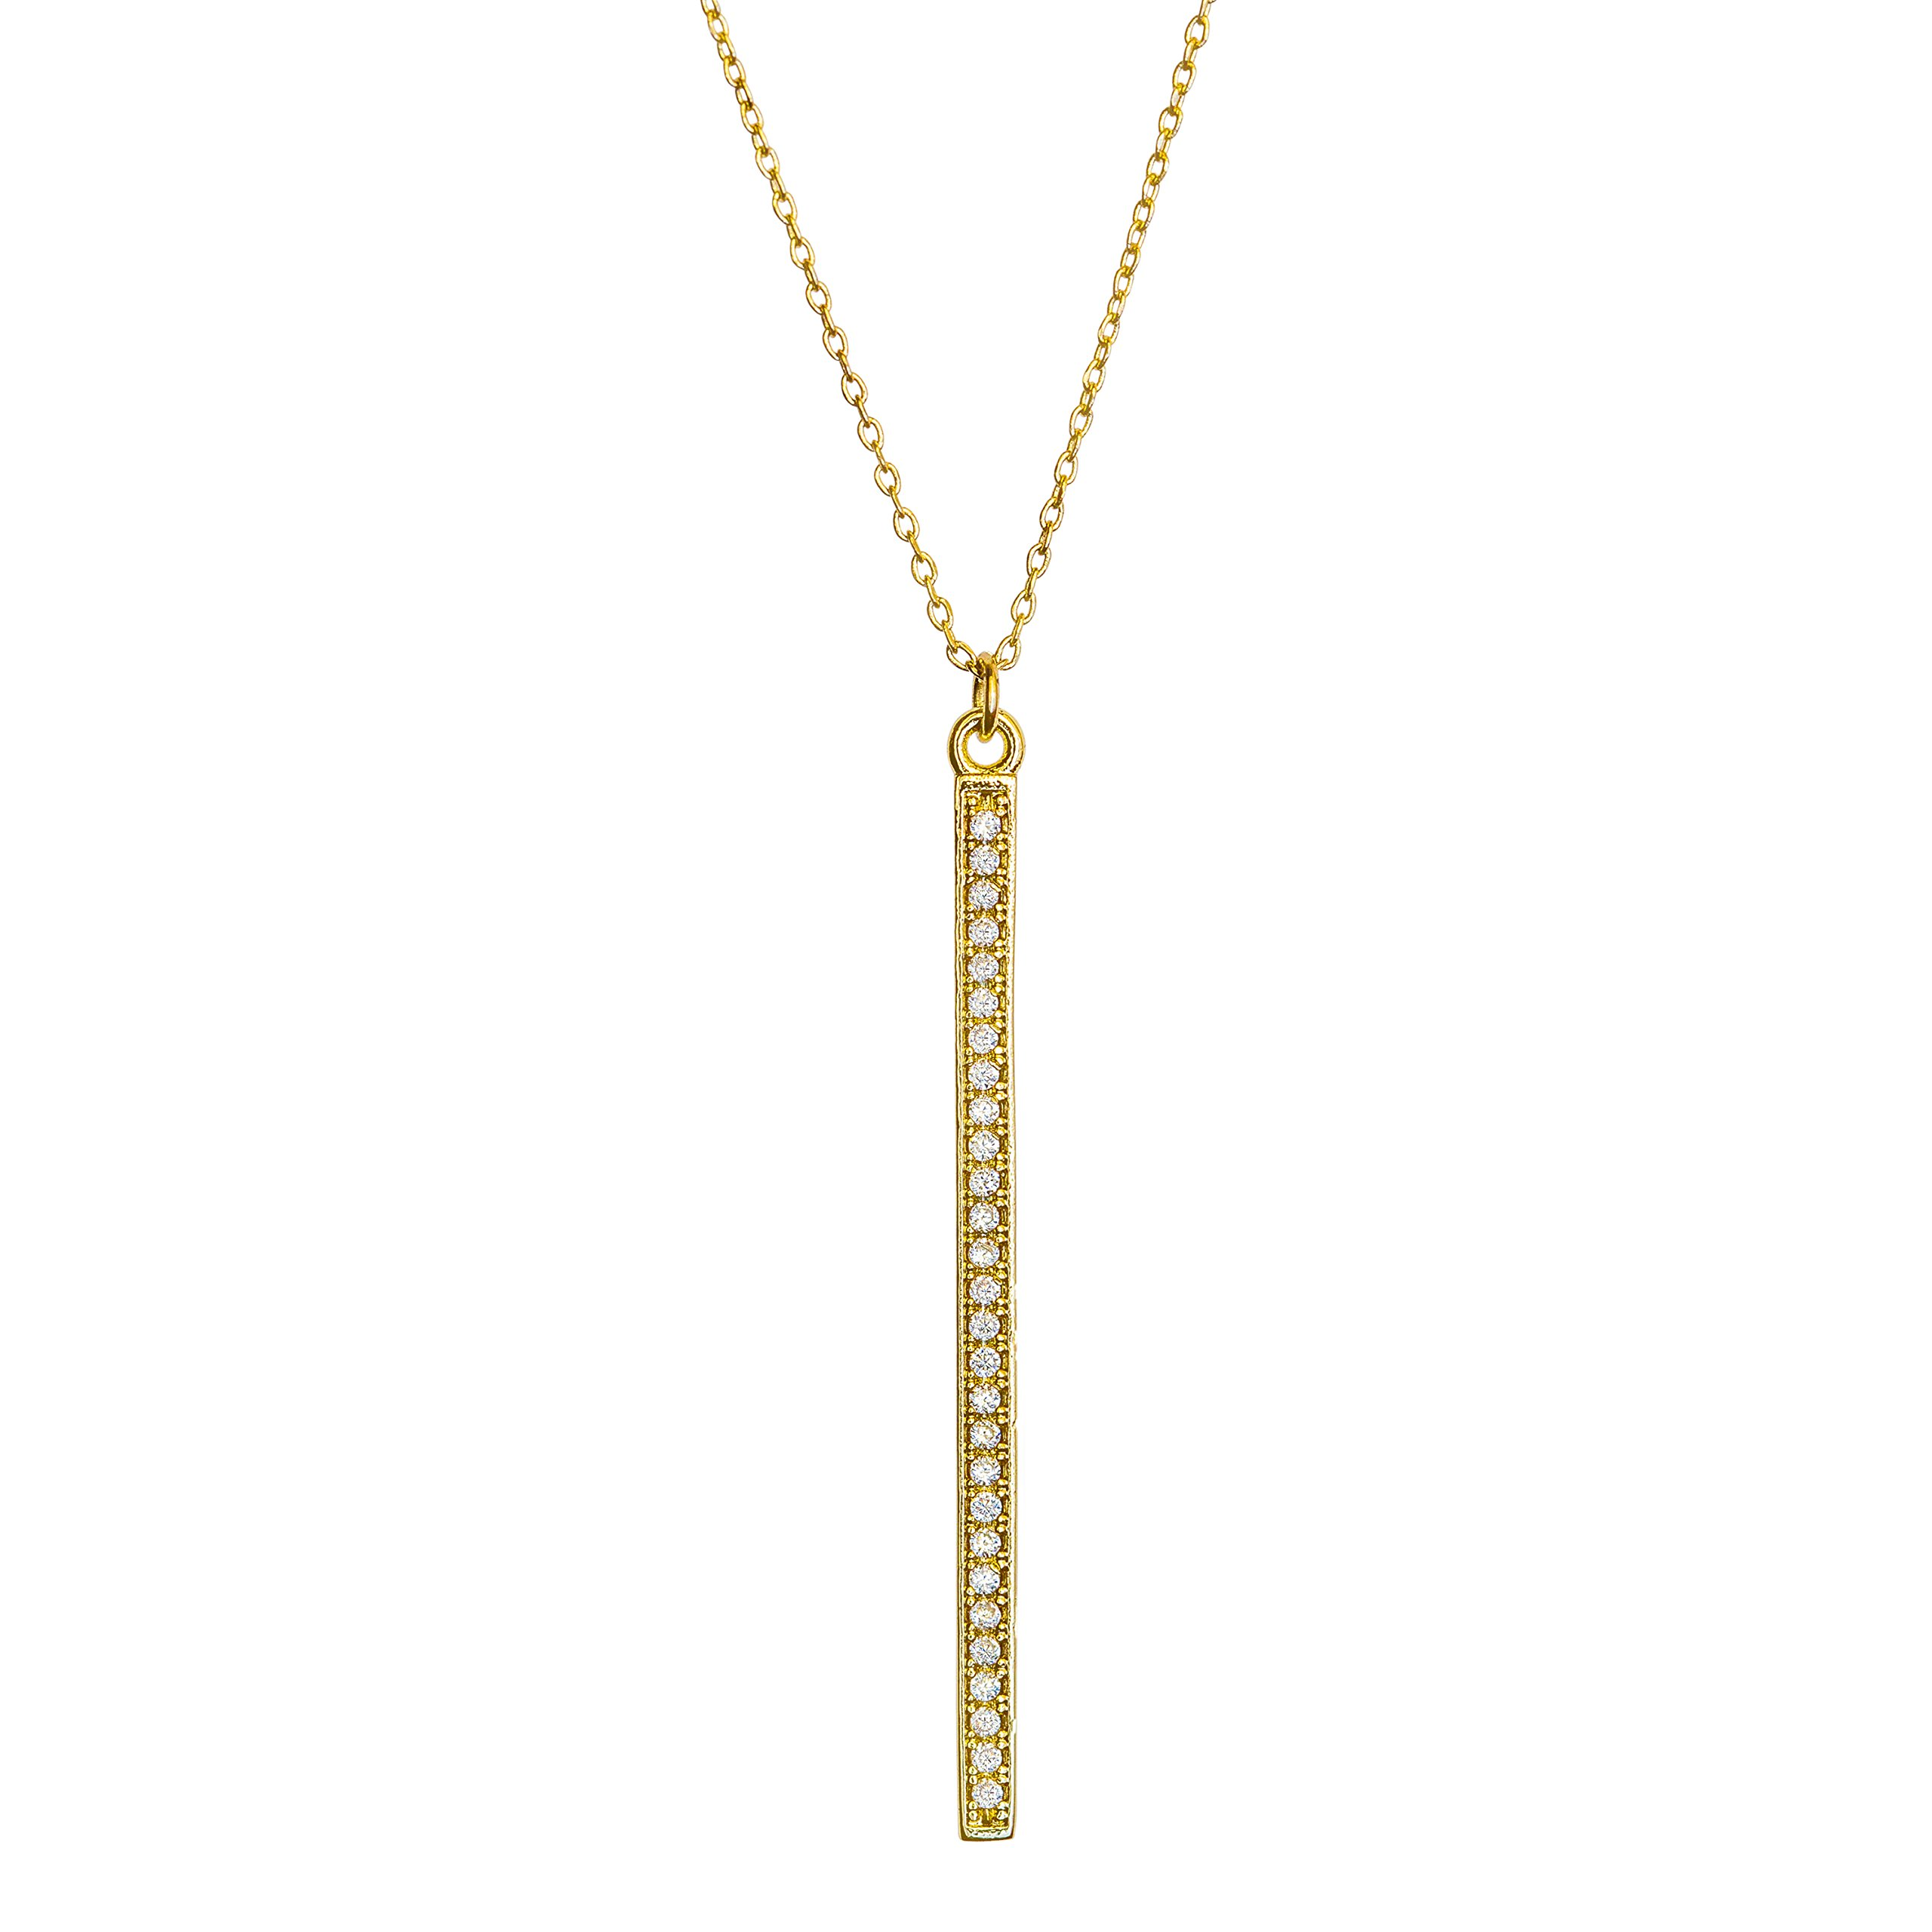 Benevolence LA Gold Necklace Lariat Drop Y Vertical Bar: 14k Gold Diamond Shaped Open Circle Cubic Zirconia Looped Long Chain Necklaces for Women Designed by Candace Cameron Bure (Vertical Bar)